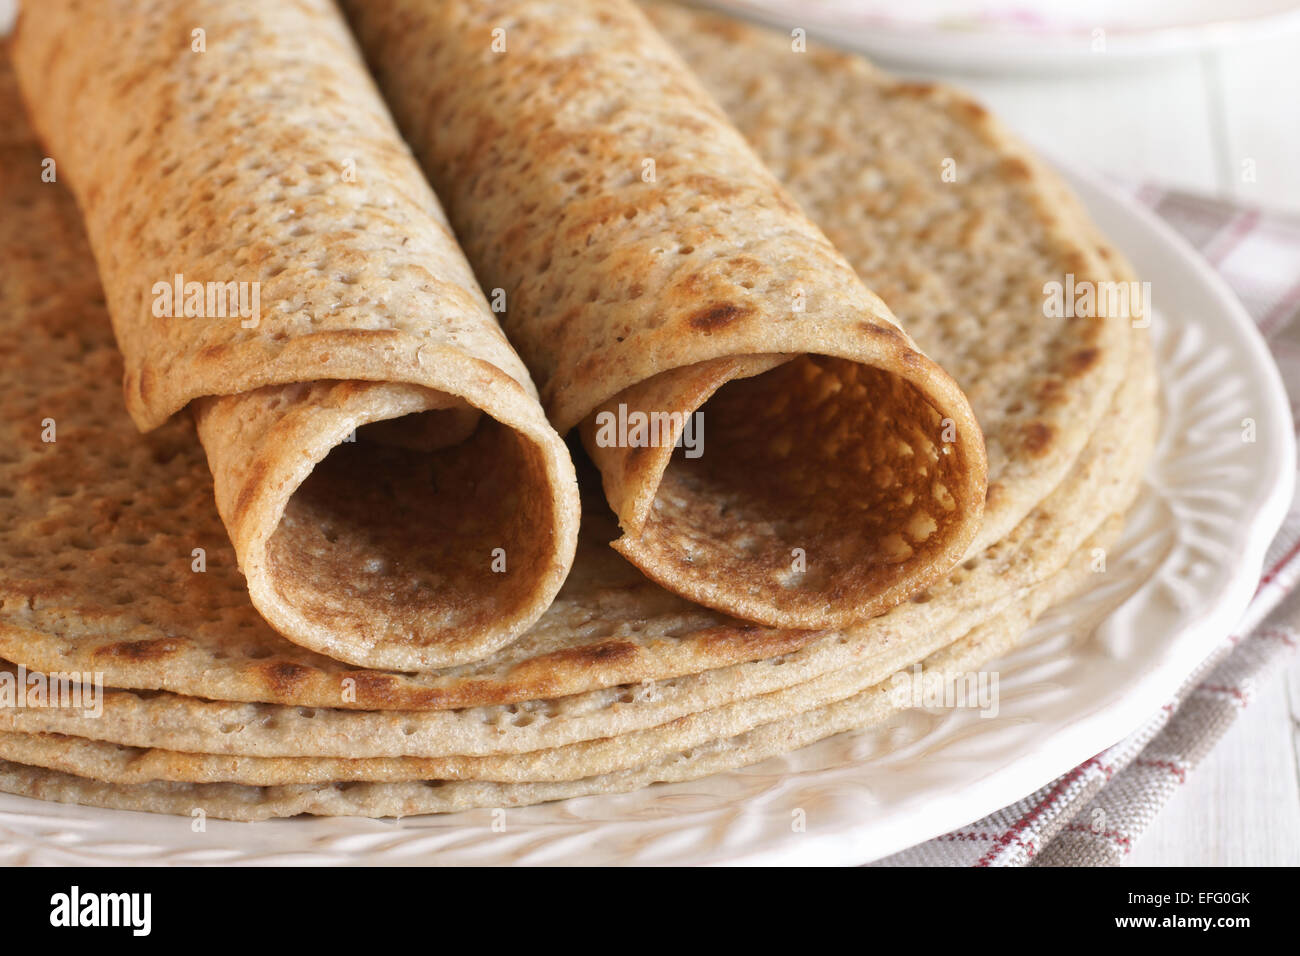 Staffordshire Oatcakes a savoury oatmeal pancake from the North Staffordshire area of England, specifically Stoke Stock Photo